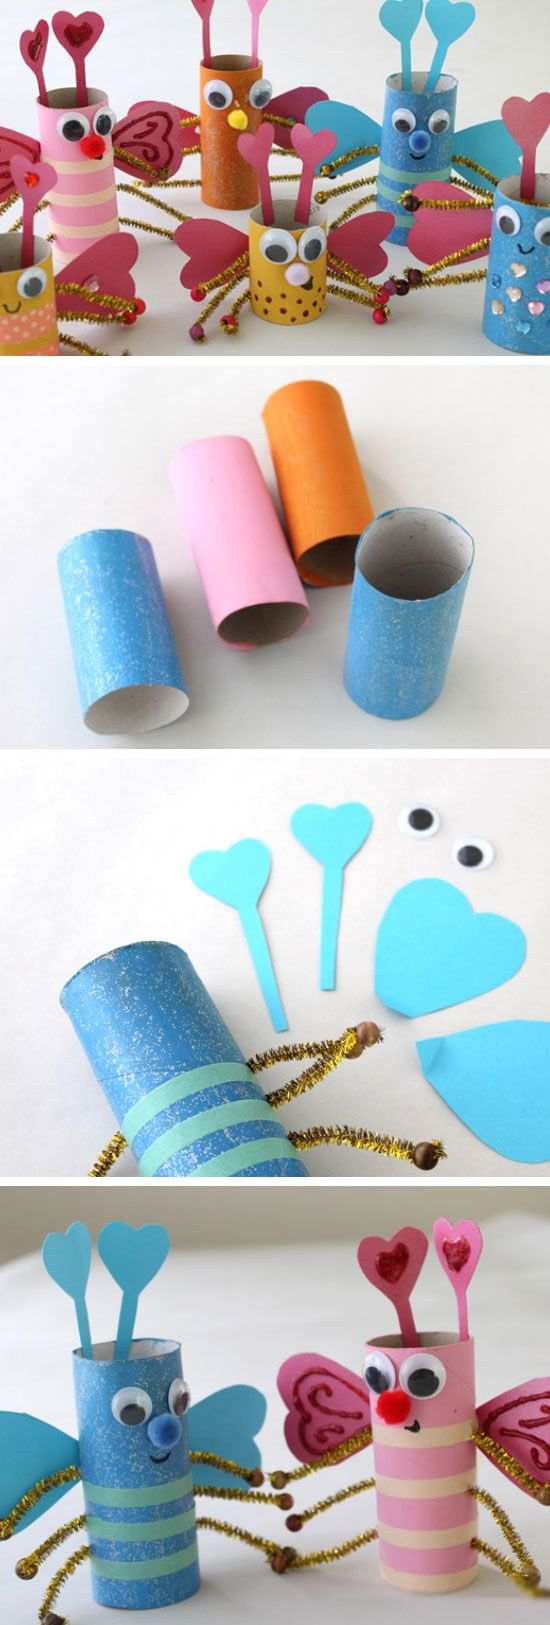 Toilet Roll Love Bugs | DIY Valentines Crafts for Kids to Make | Easy Valentine Crafts for Preschoolers to Make